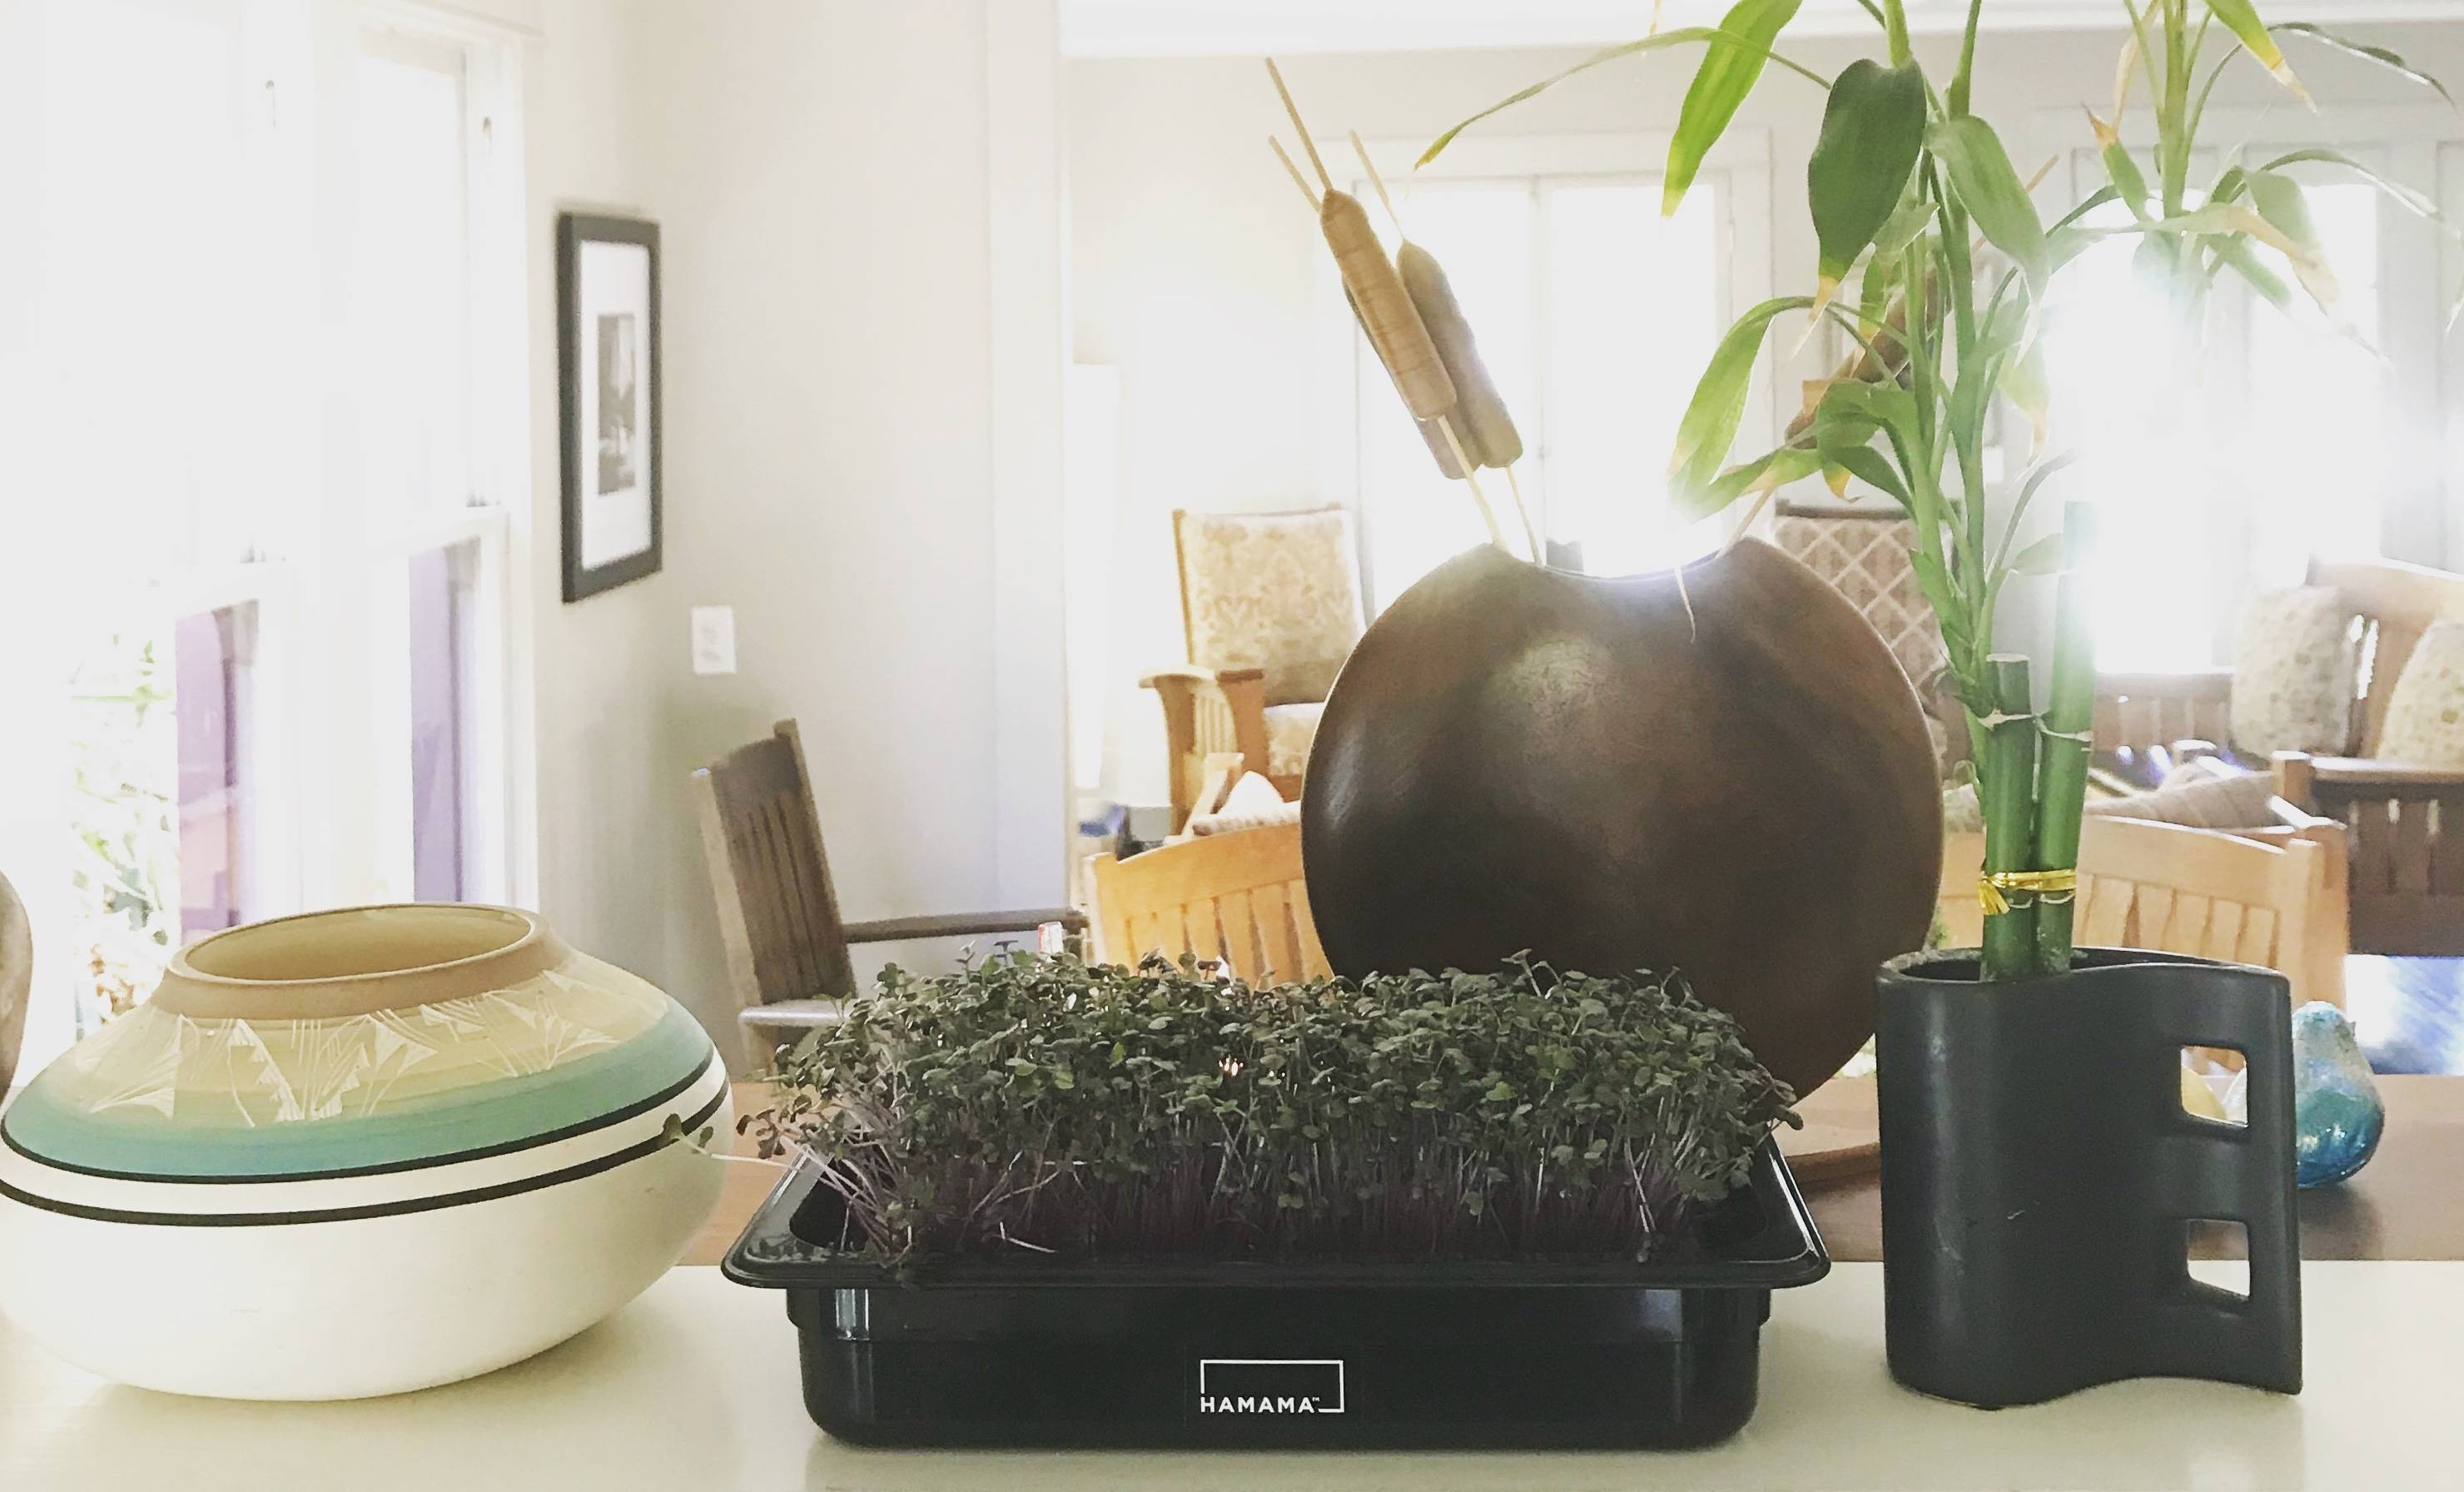 Fully grown red cabbage microgreens on a countertop in the living room of a house.